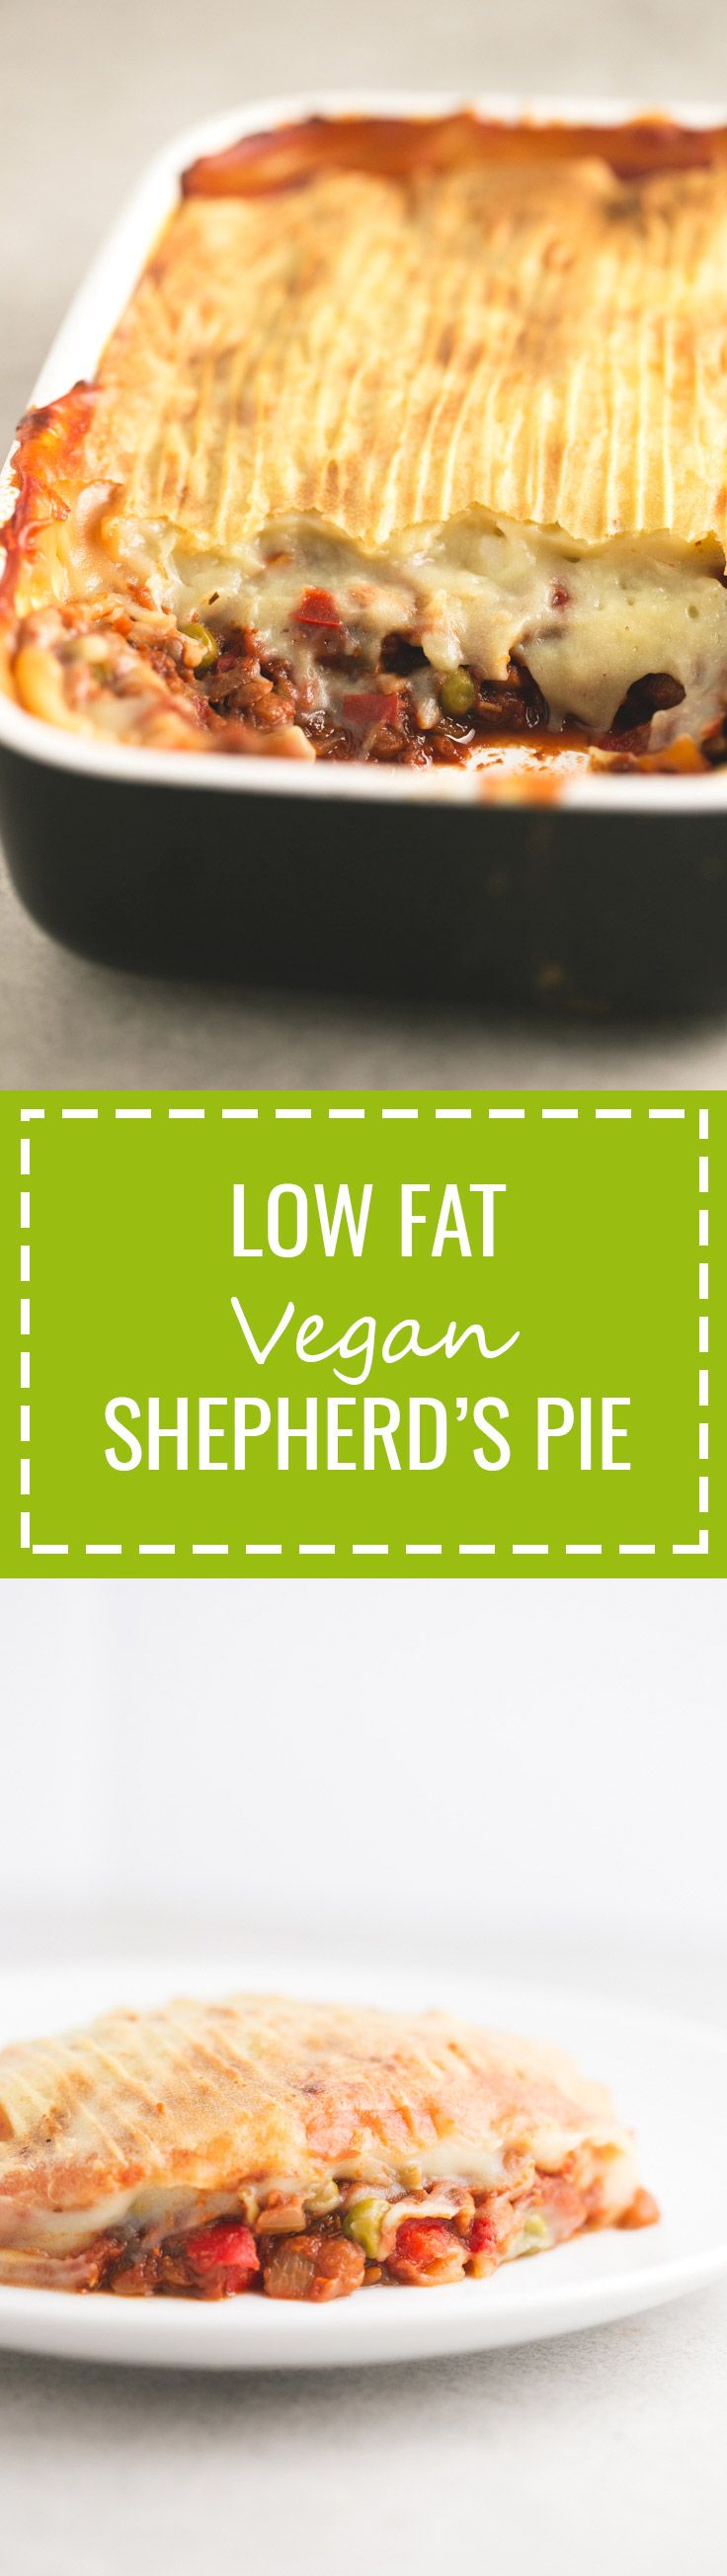 Low Fat Vegan Shepherd's Pie - You should give this vegan Shepherd's pie a try! It's a super healthy high carb, low fat recipe and is extremely delicious!